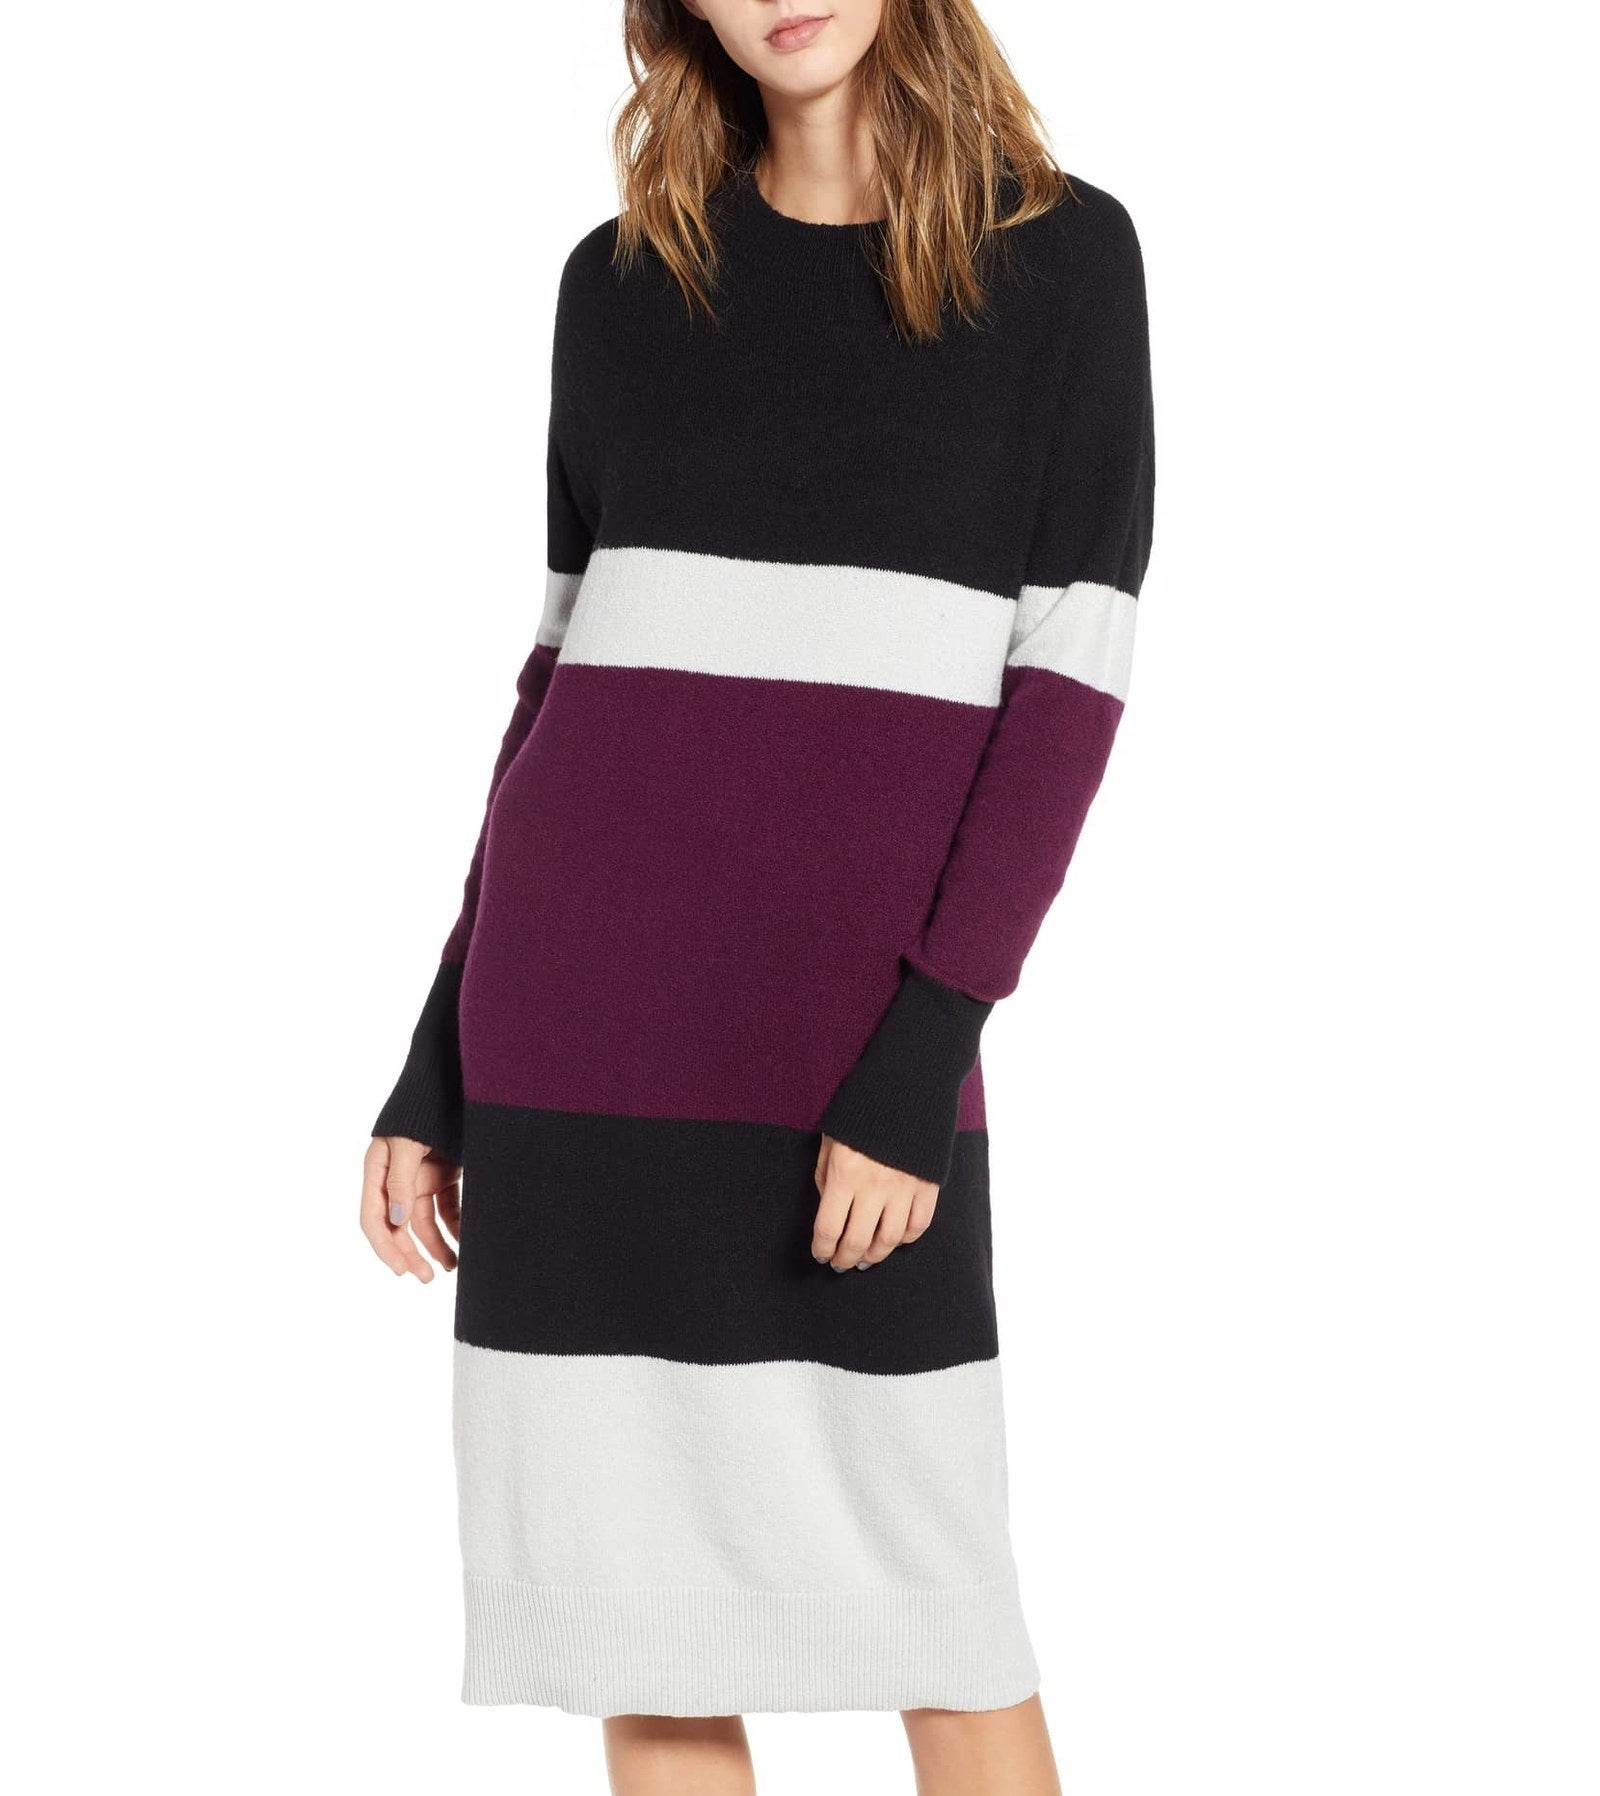 Get it from Nordstrom for $29.40 (originally $49; available in sizes XXS-XL).